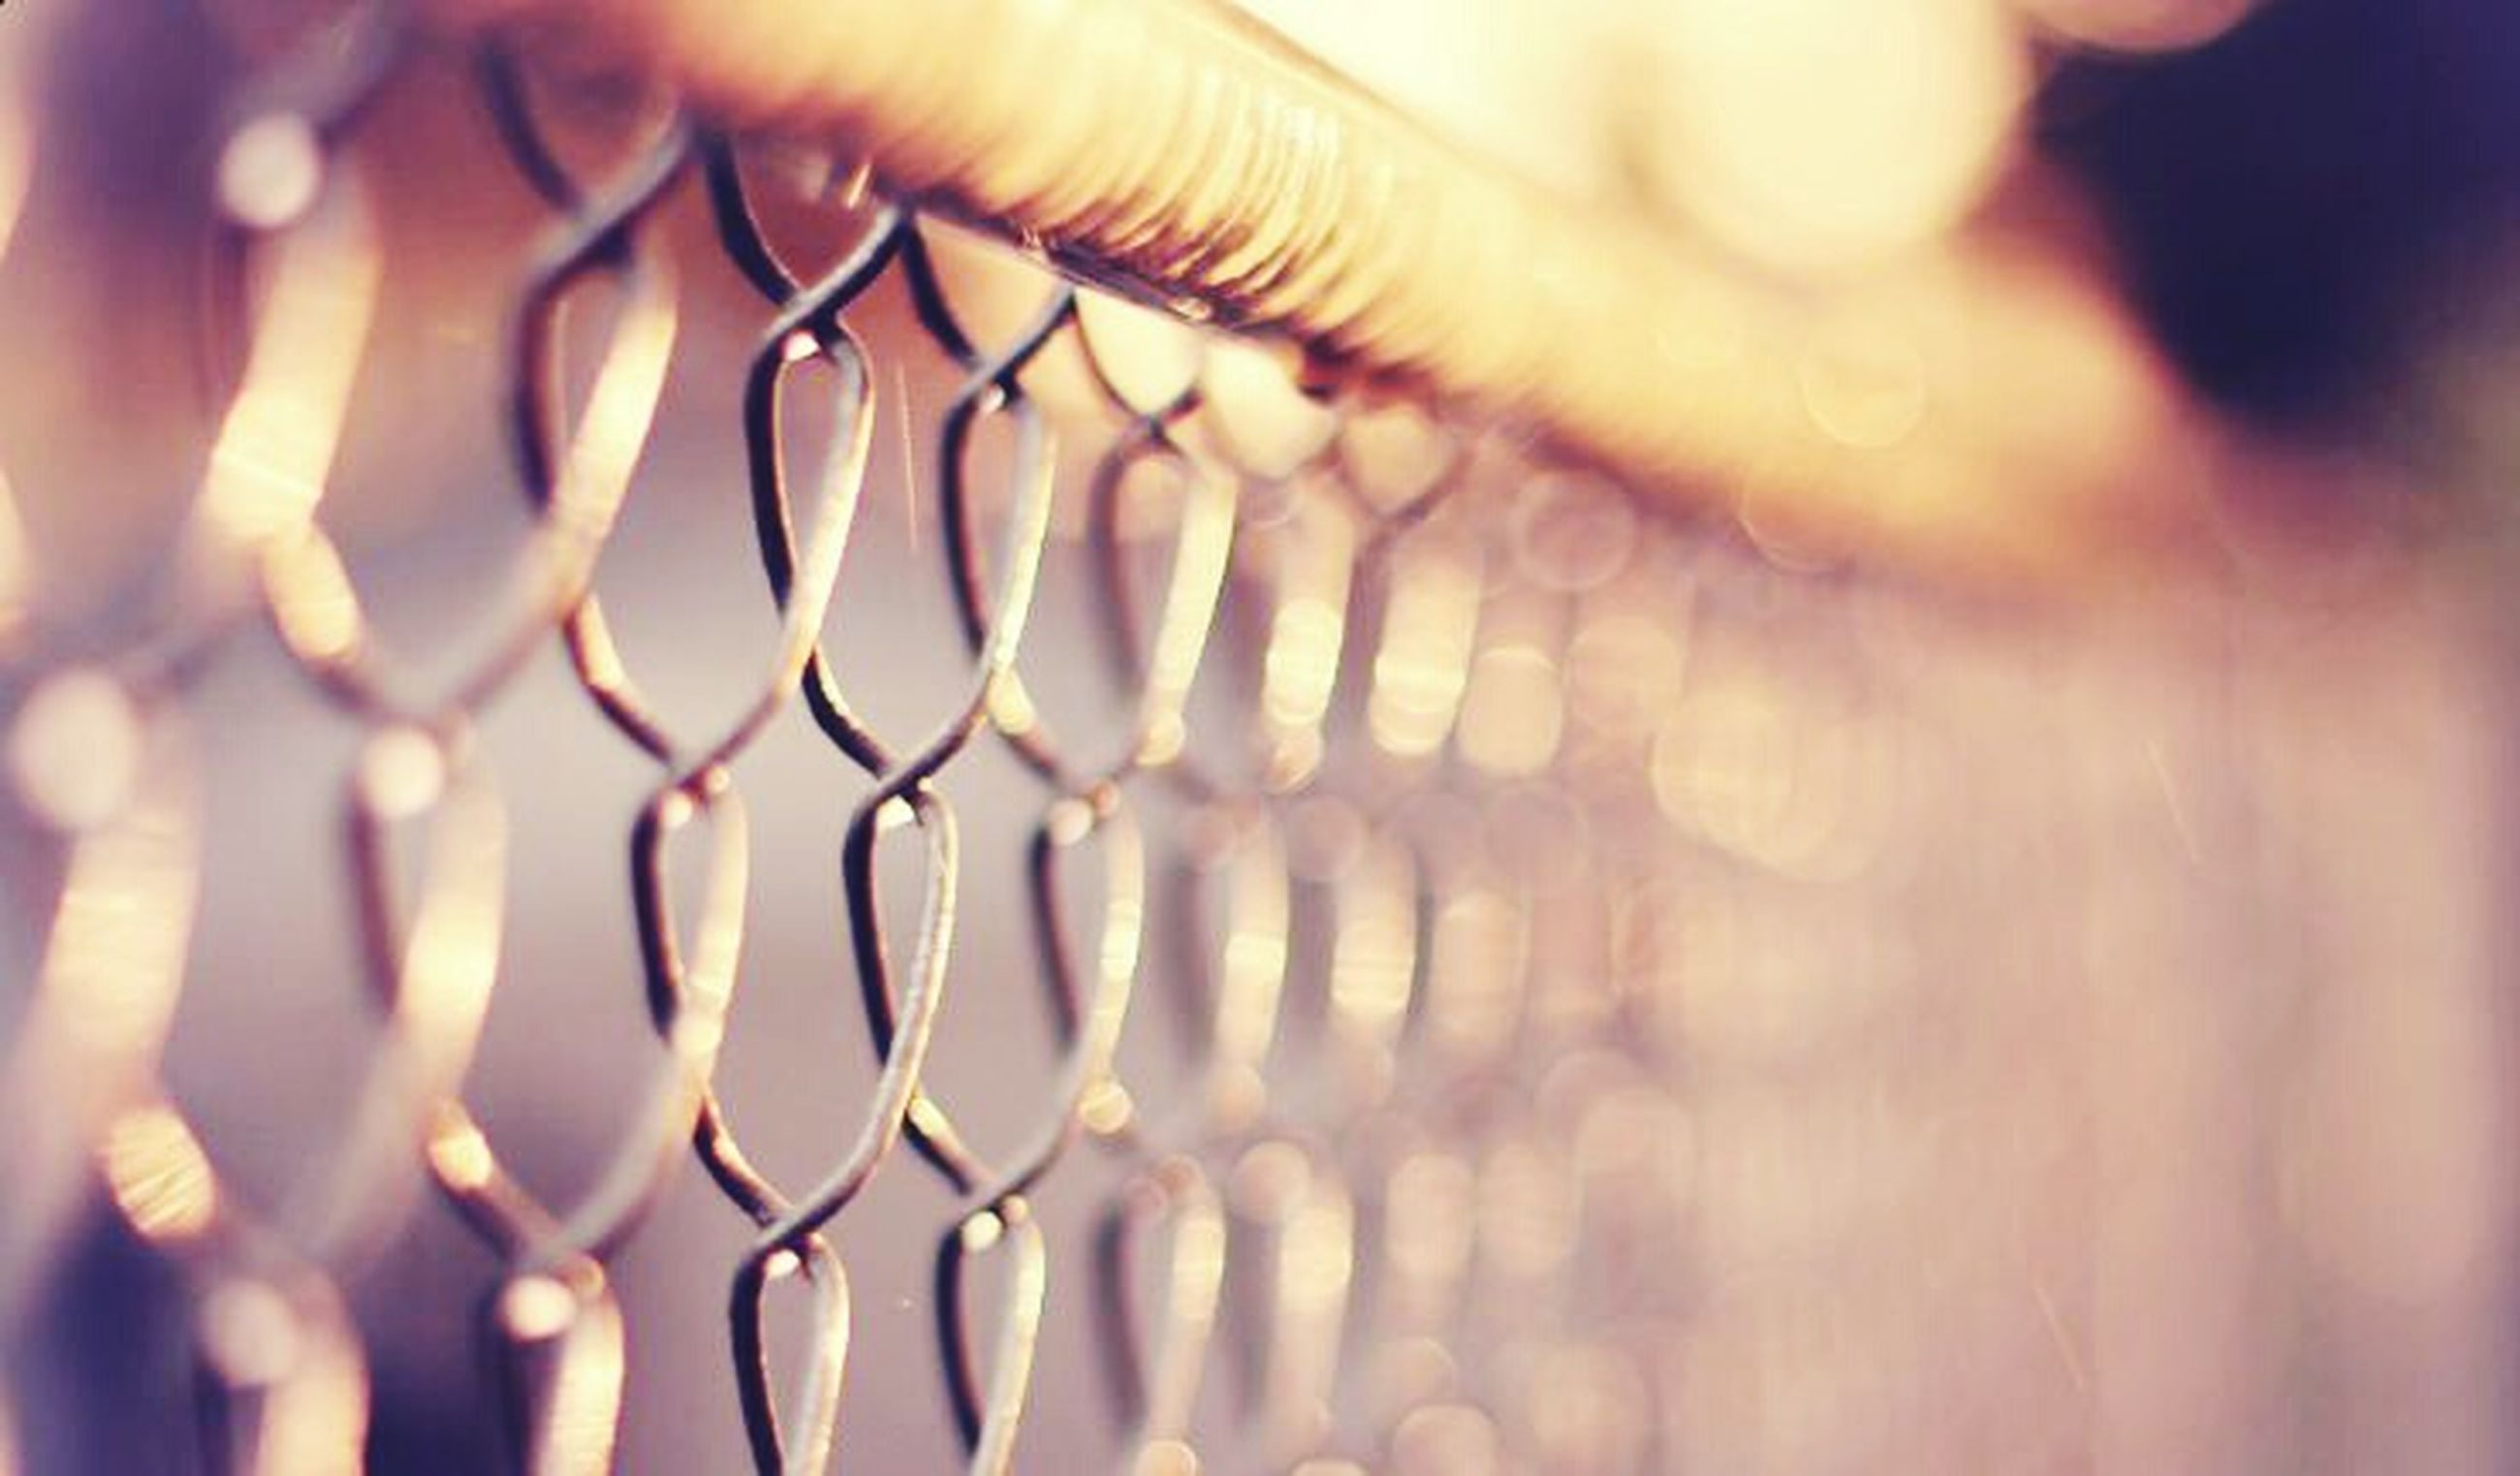 focus on foreground, close-up, selective focus, pattern, metal, indoors, metallic, protection, full frame, part of, detail, design, backgrounds, safety, repetition, fence, day, shape, no people